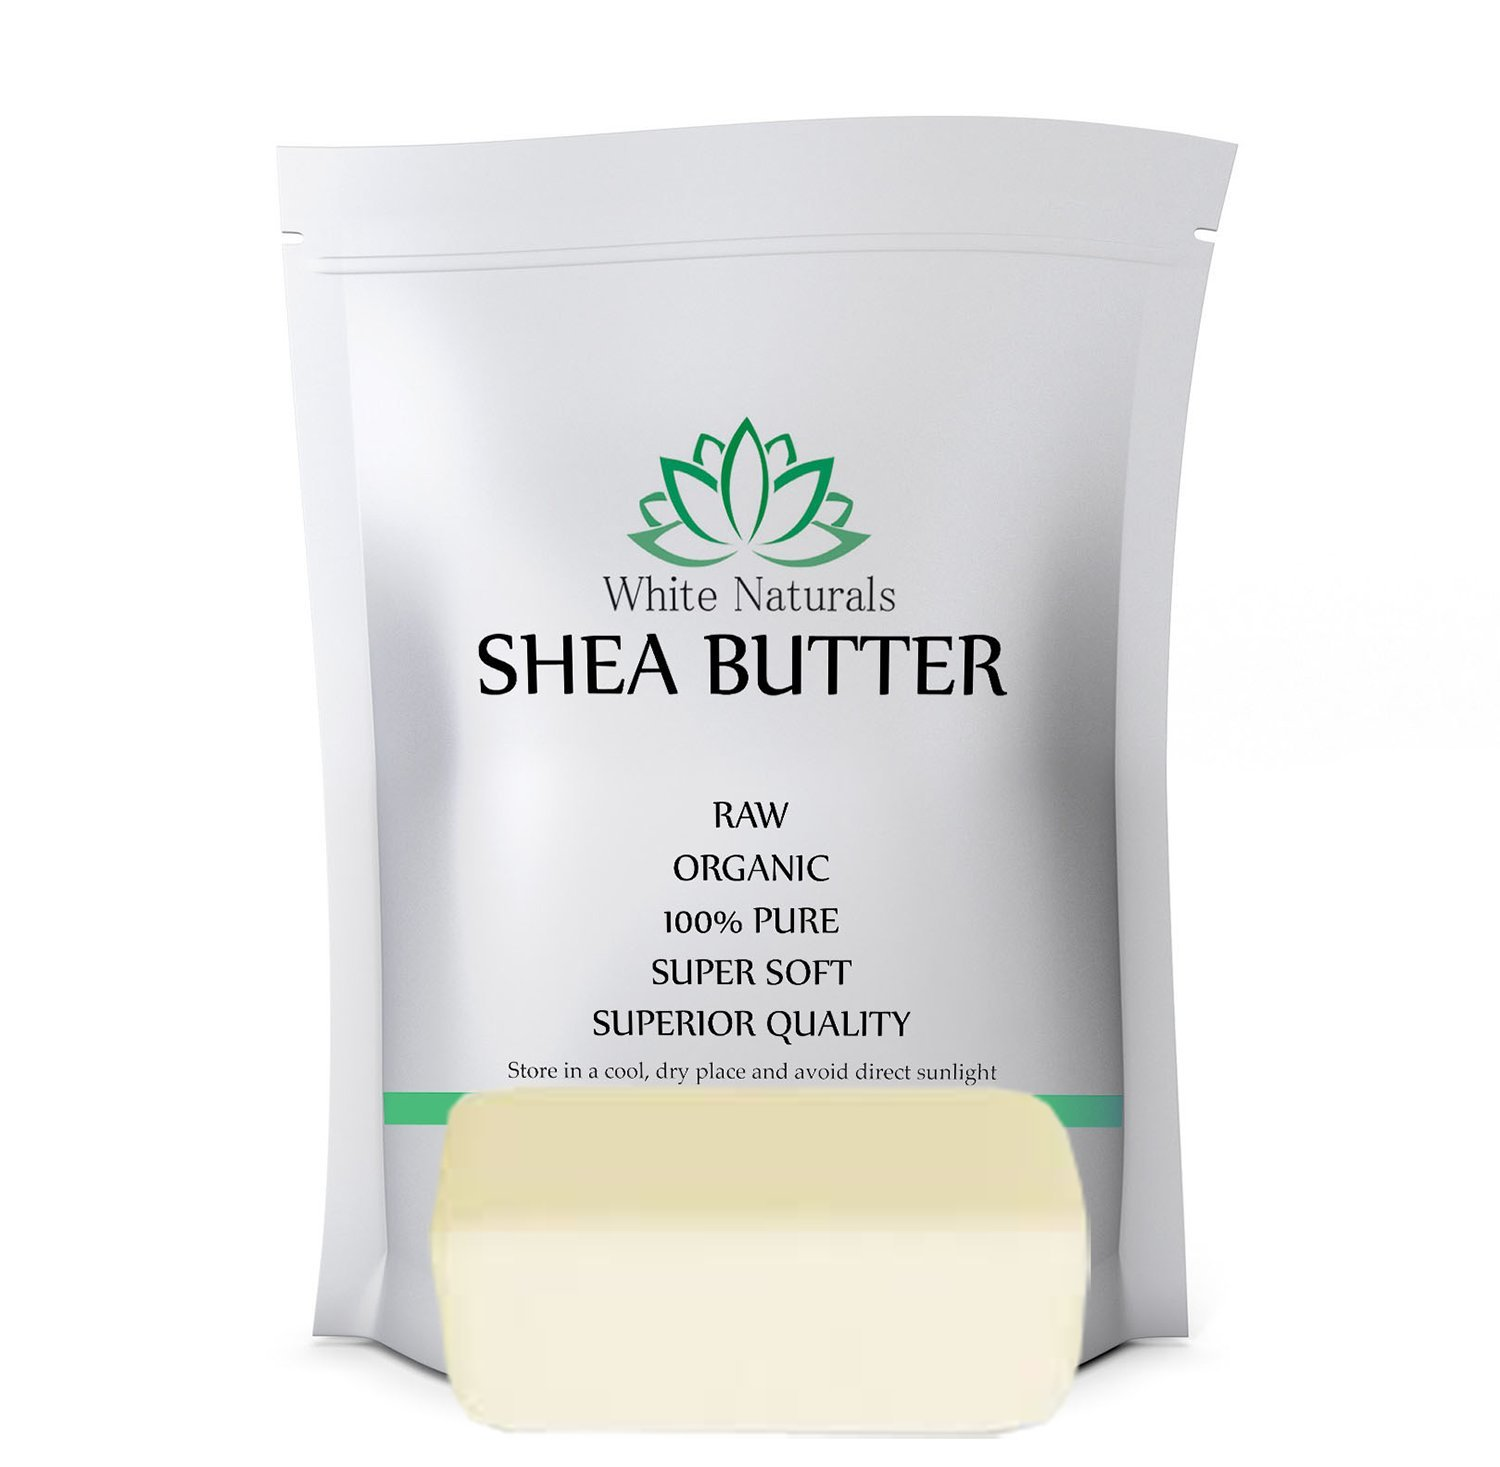 Shea Butter 16oz By White Naturals – Unrefined, 100% Pure, Raw, Grade A, Use As Skin Moisturizer, Lip Balms, Stretch Marks, Acne, Recover Sun Damage, Kids Cream & More!